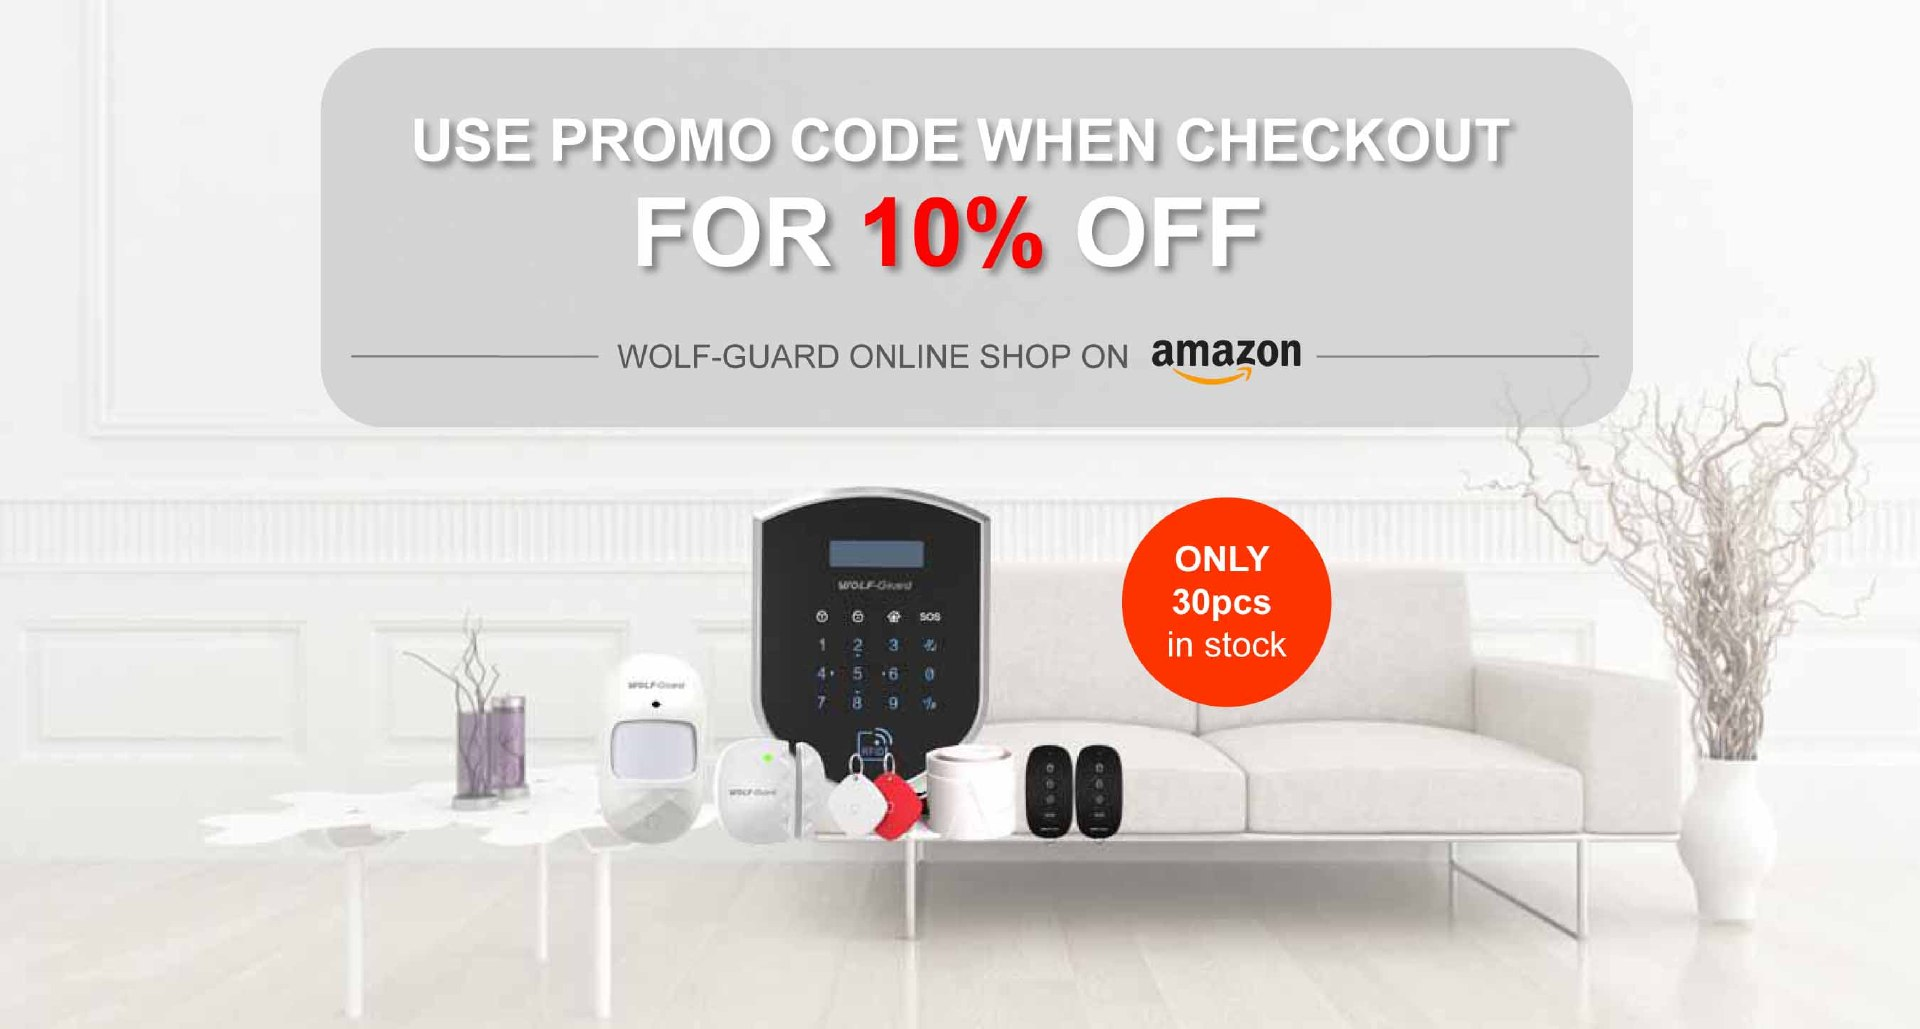 Breaking promotion on Amazon - 10% OFF